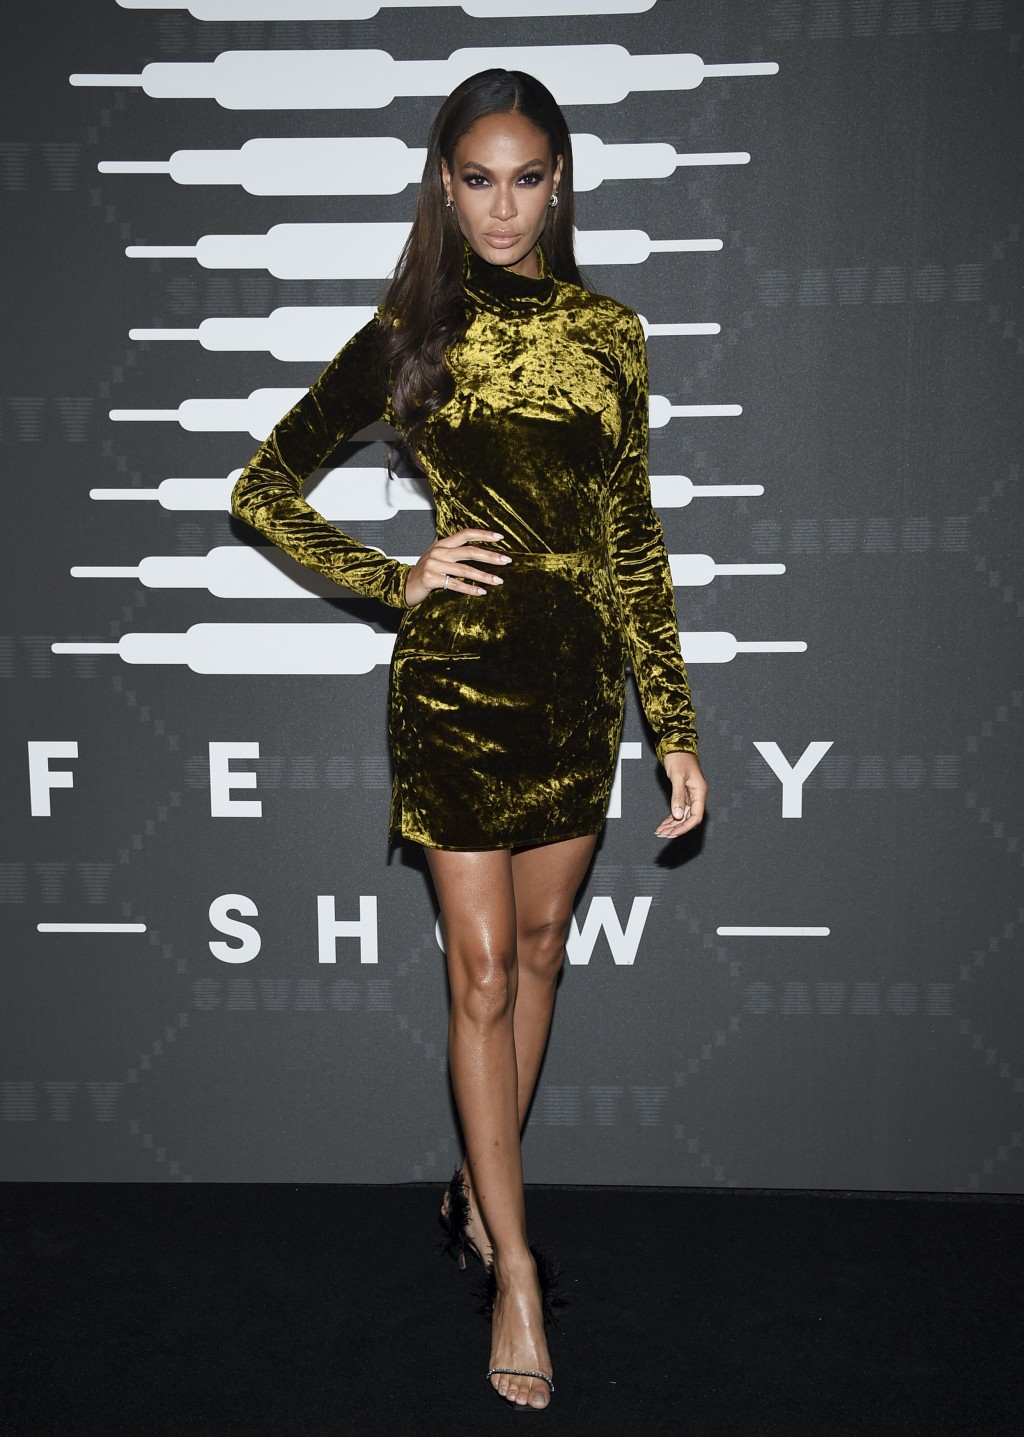 Model Joan Smalls attends the Spring/Summer 2020 Savage X Fenty show, presented by Amazon Prime, at the Barclays Center on Tuesday, Sept, 10, 2019, in